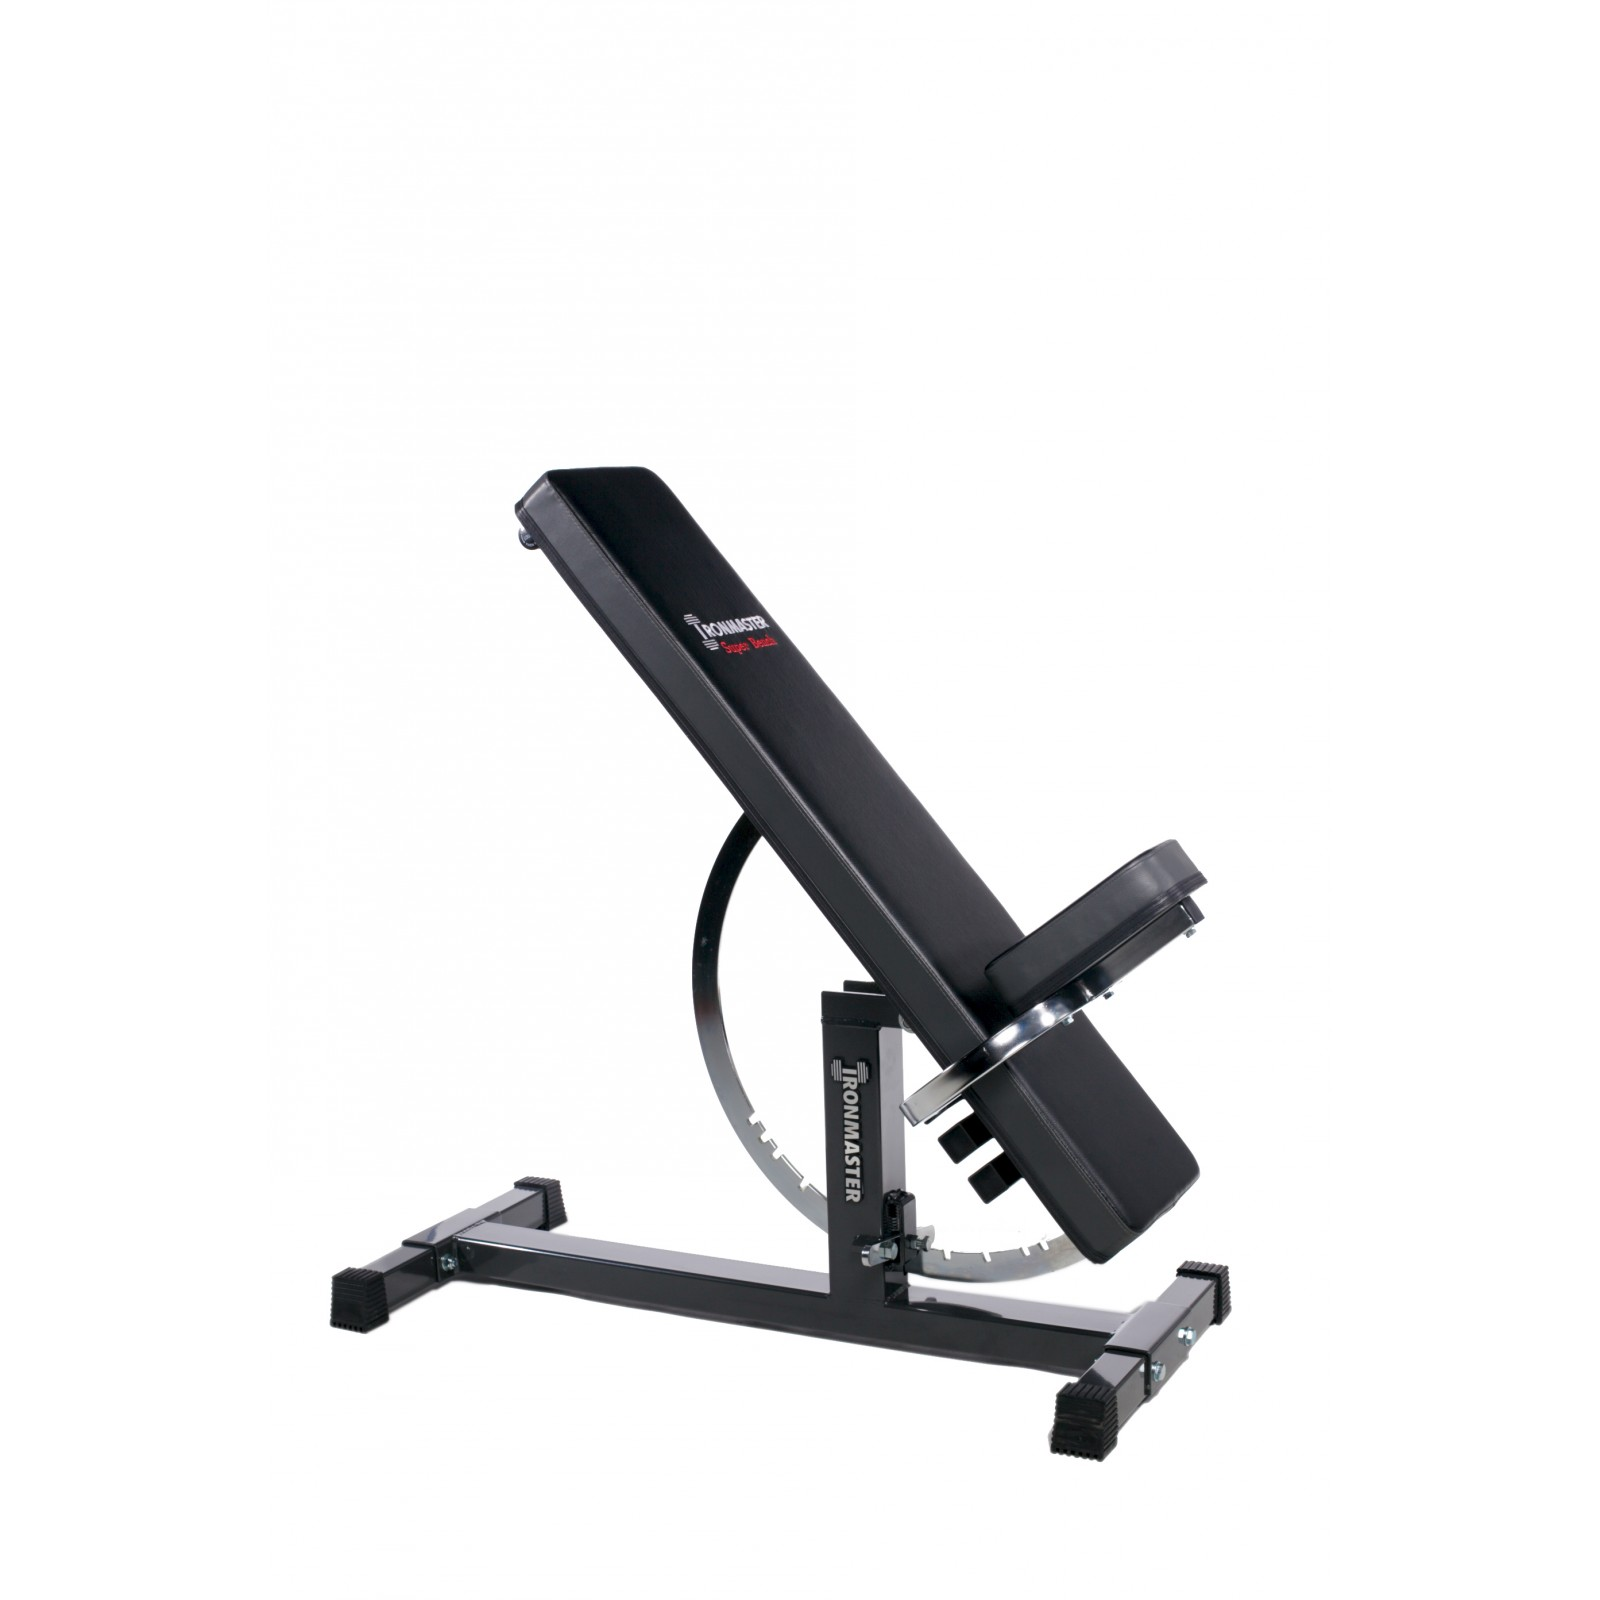 Lovely Iron Master Super Bench Part - 12: Ironmaster Super Bench Product Picture. Close. Zoom. Product Picture.  Loading Zoom